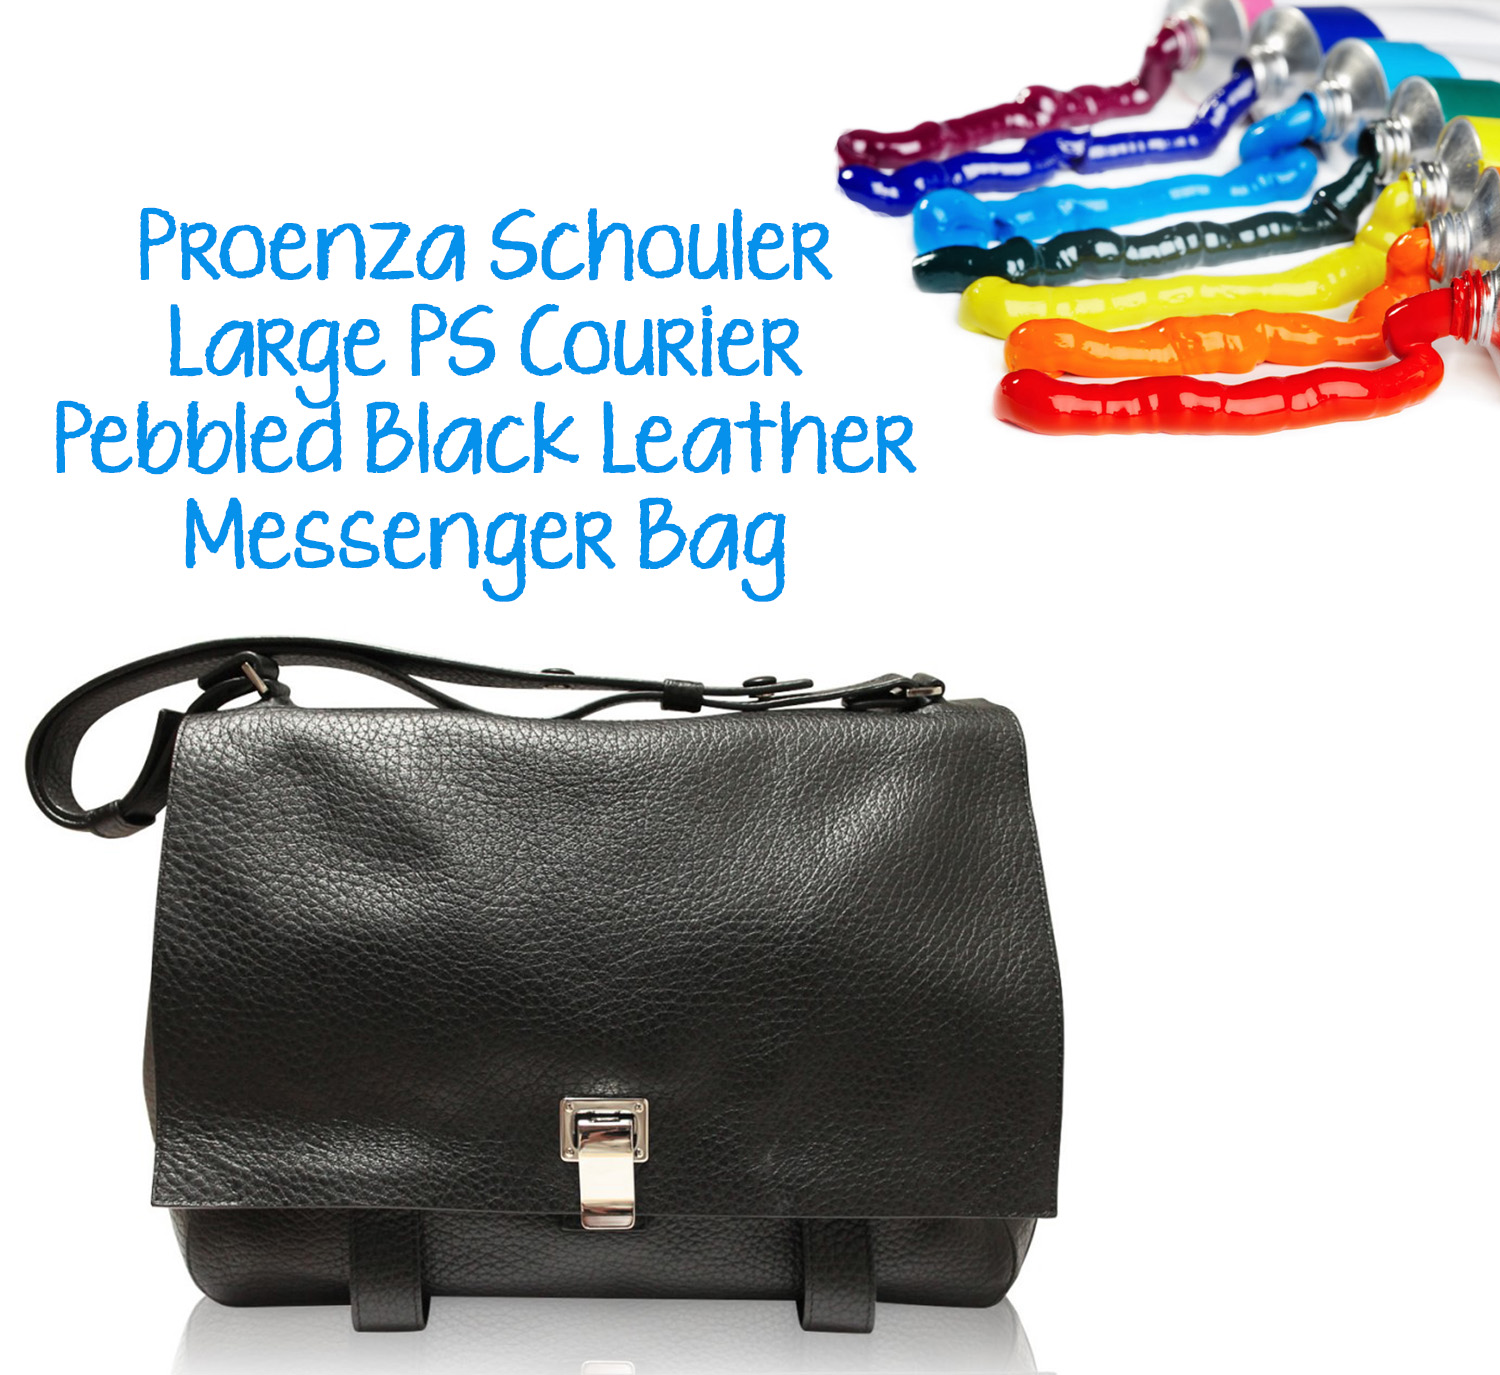 Proenza Schouler PS Courier Bag Boca Raton